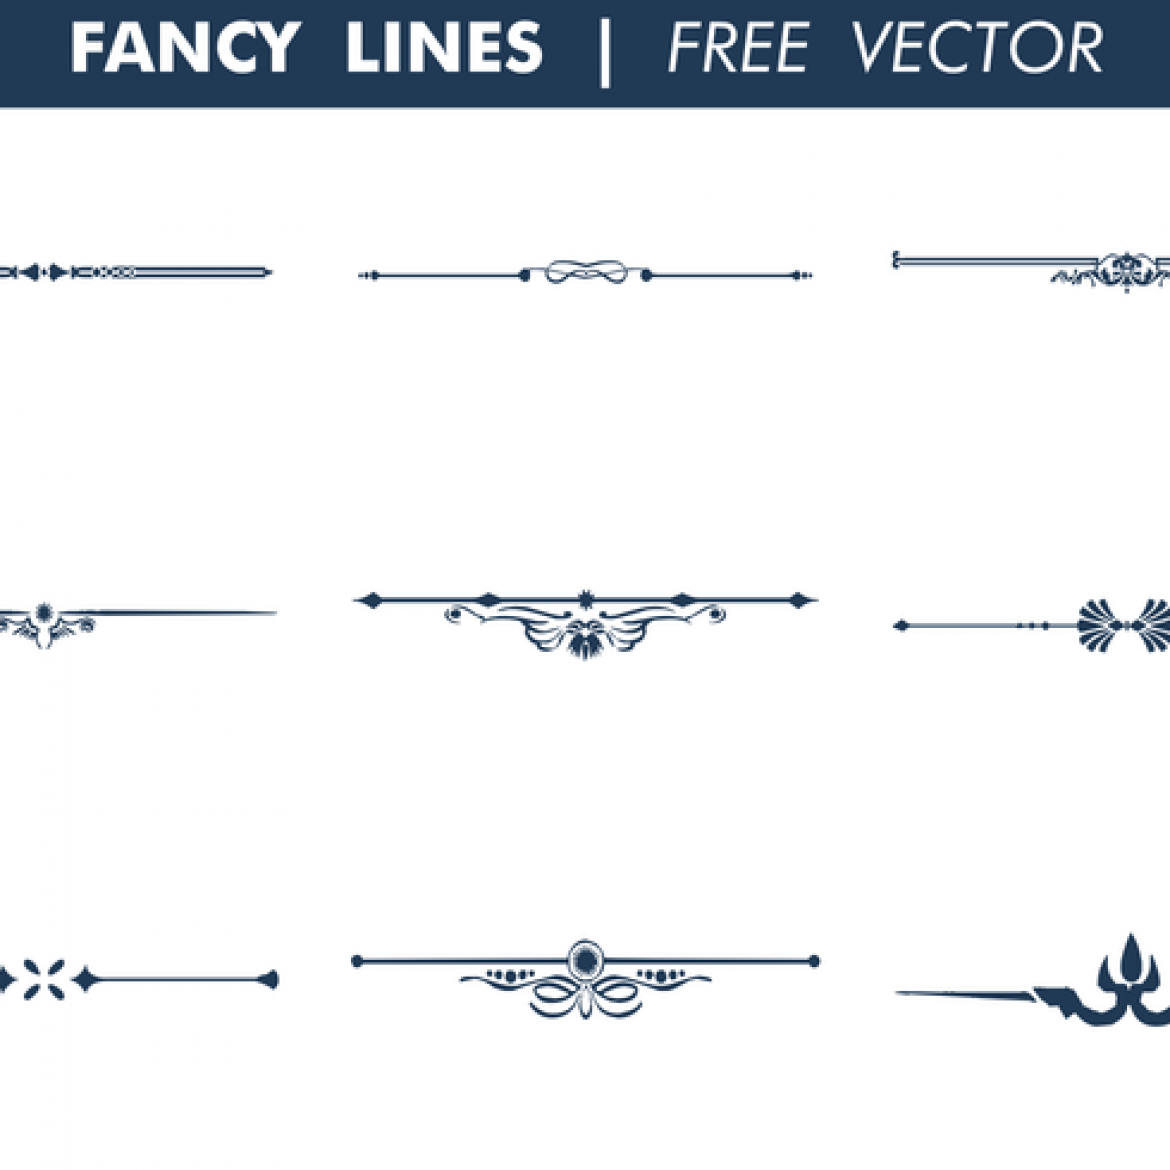 Vector Drawing Lines Game : Free vector decorative fancy lines my